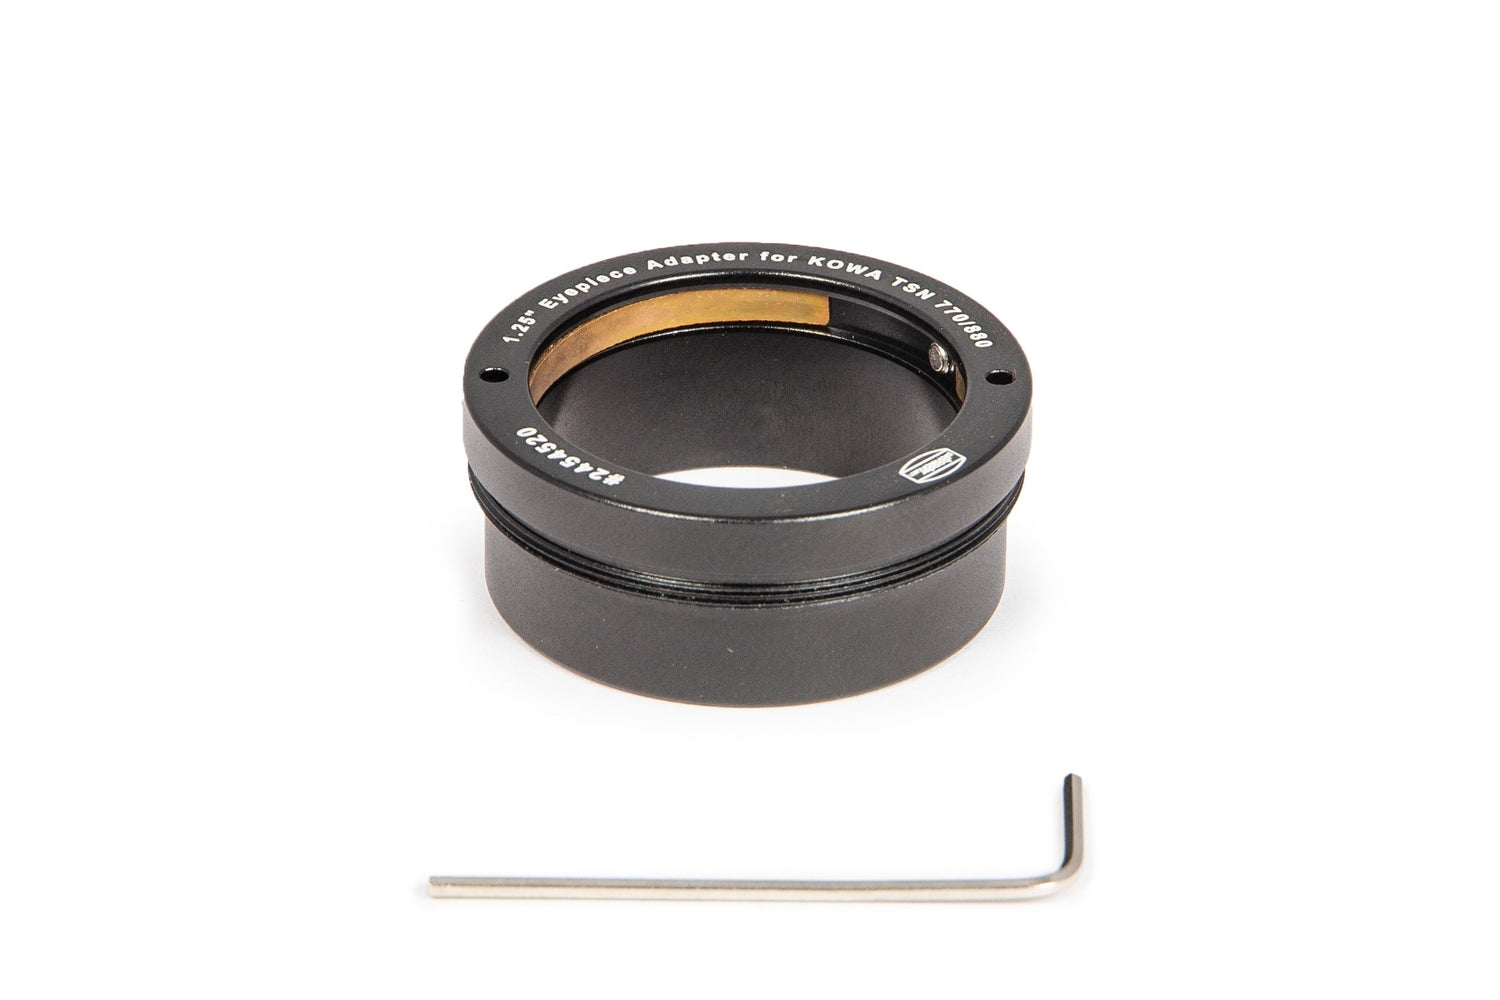 "Baader 1¼"" / M41 Eyepiece-Adaptor for Kowa TSN 770 / 880 Spotting Scopes"